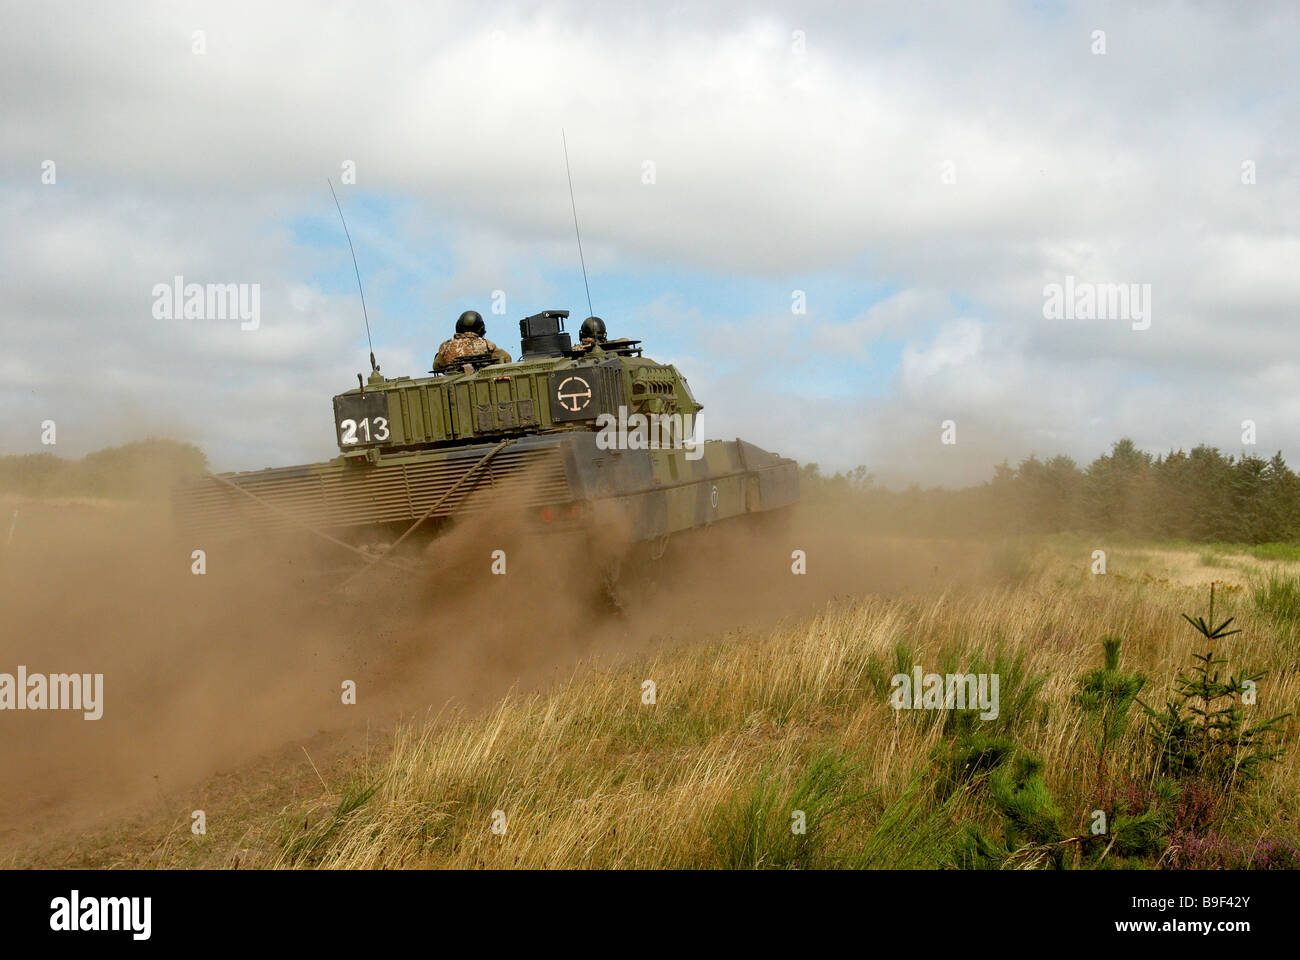 Danish leopard 2 A5 during attack - Stock Image